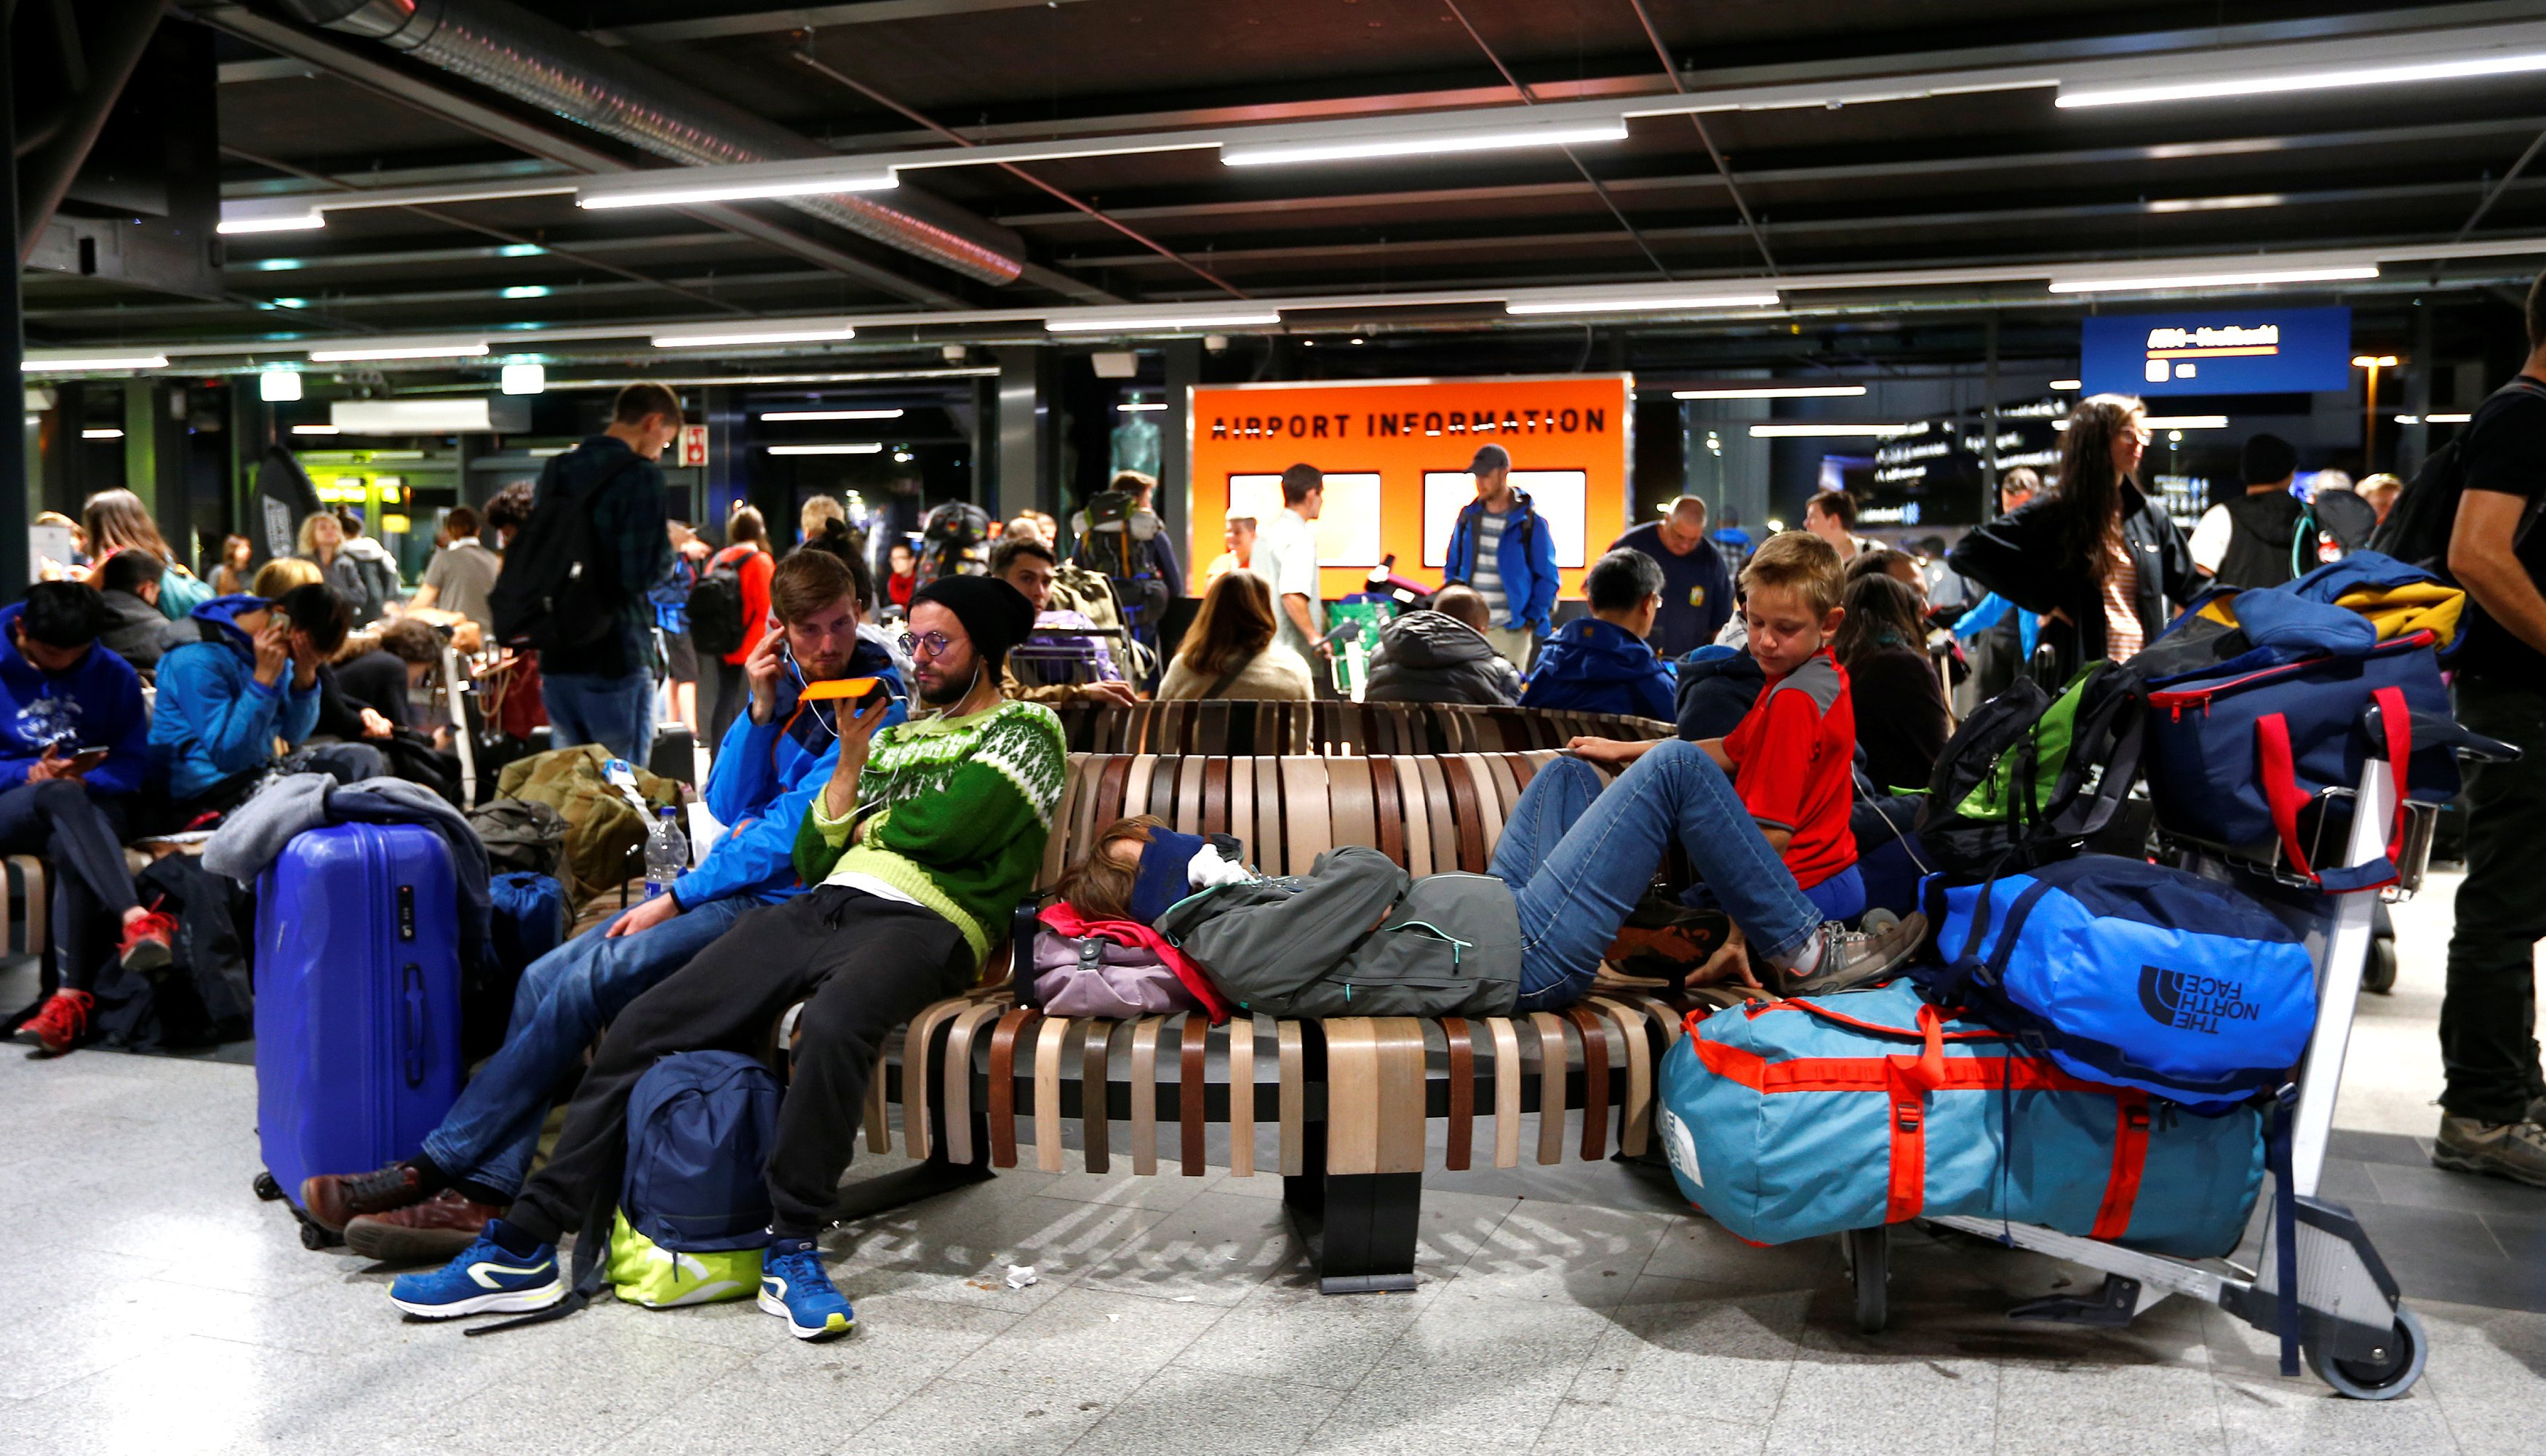 Iceland's Keflavik Airport sets a new record high for passengers last month